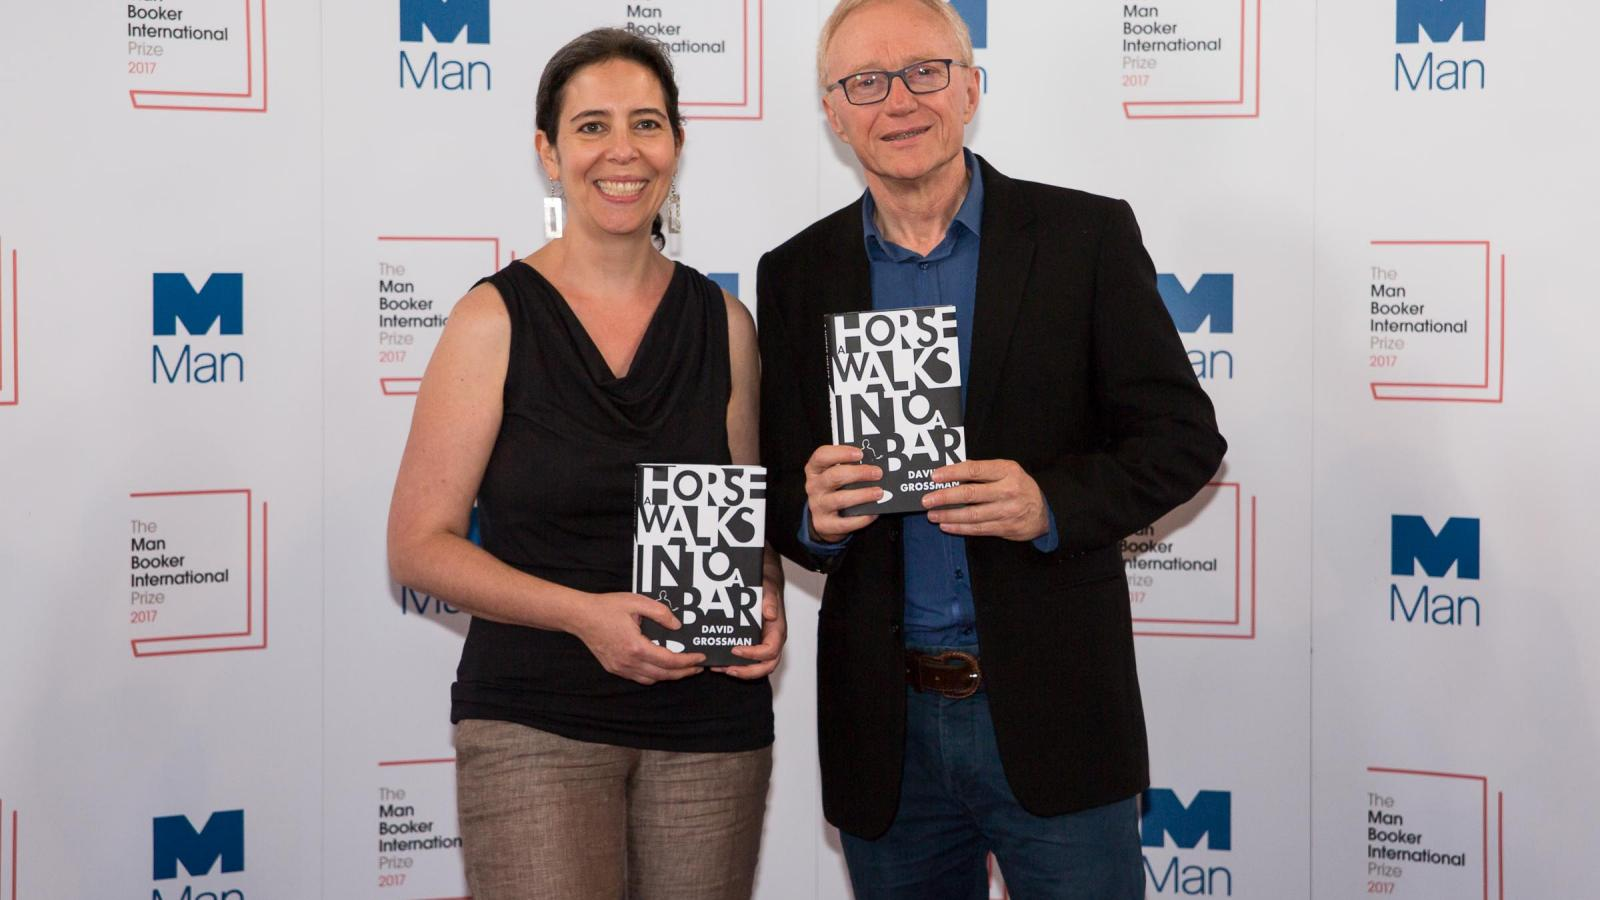 David Grossmann wint de Man Booker International Prize 2017